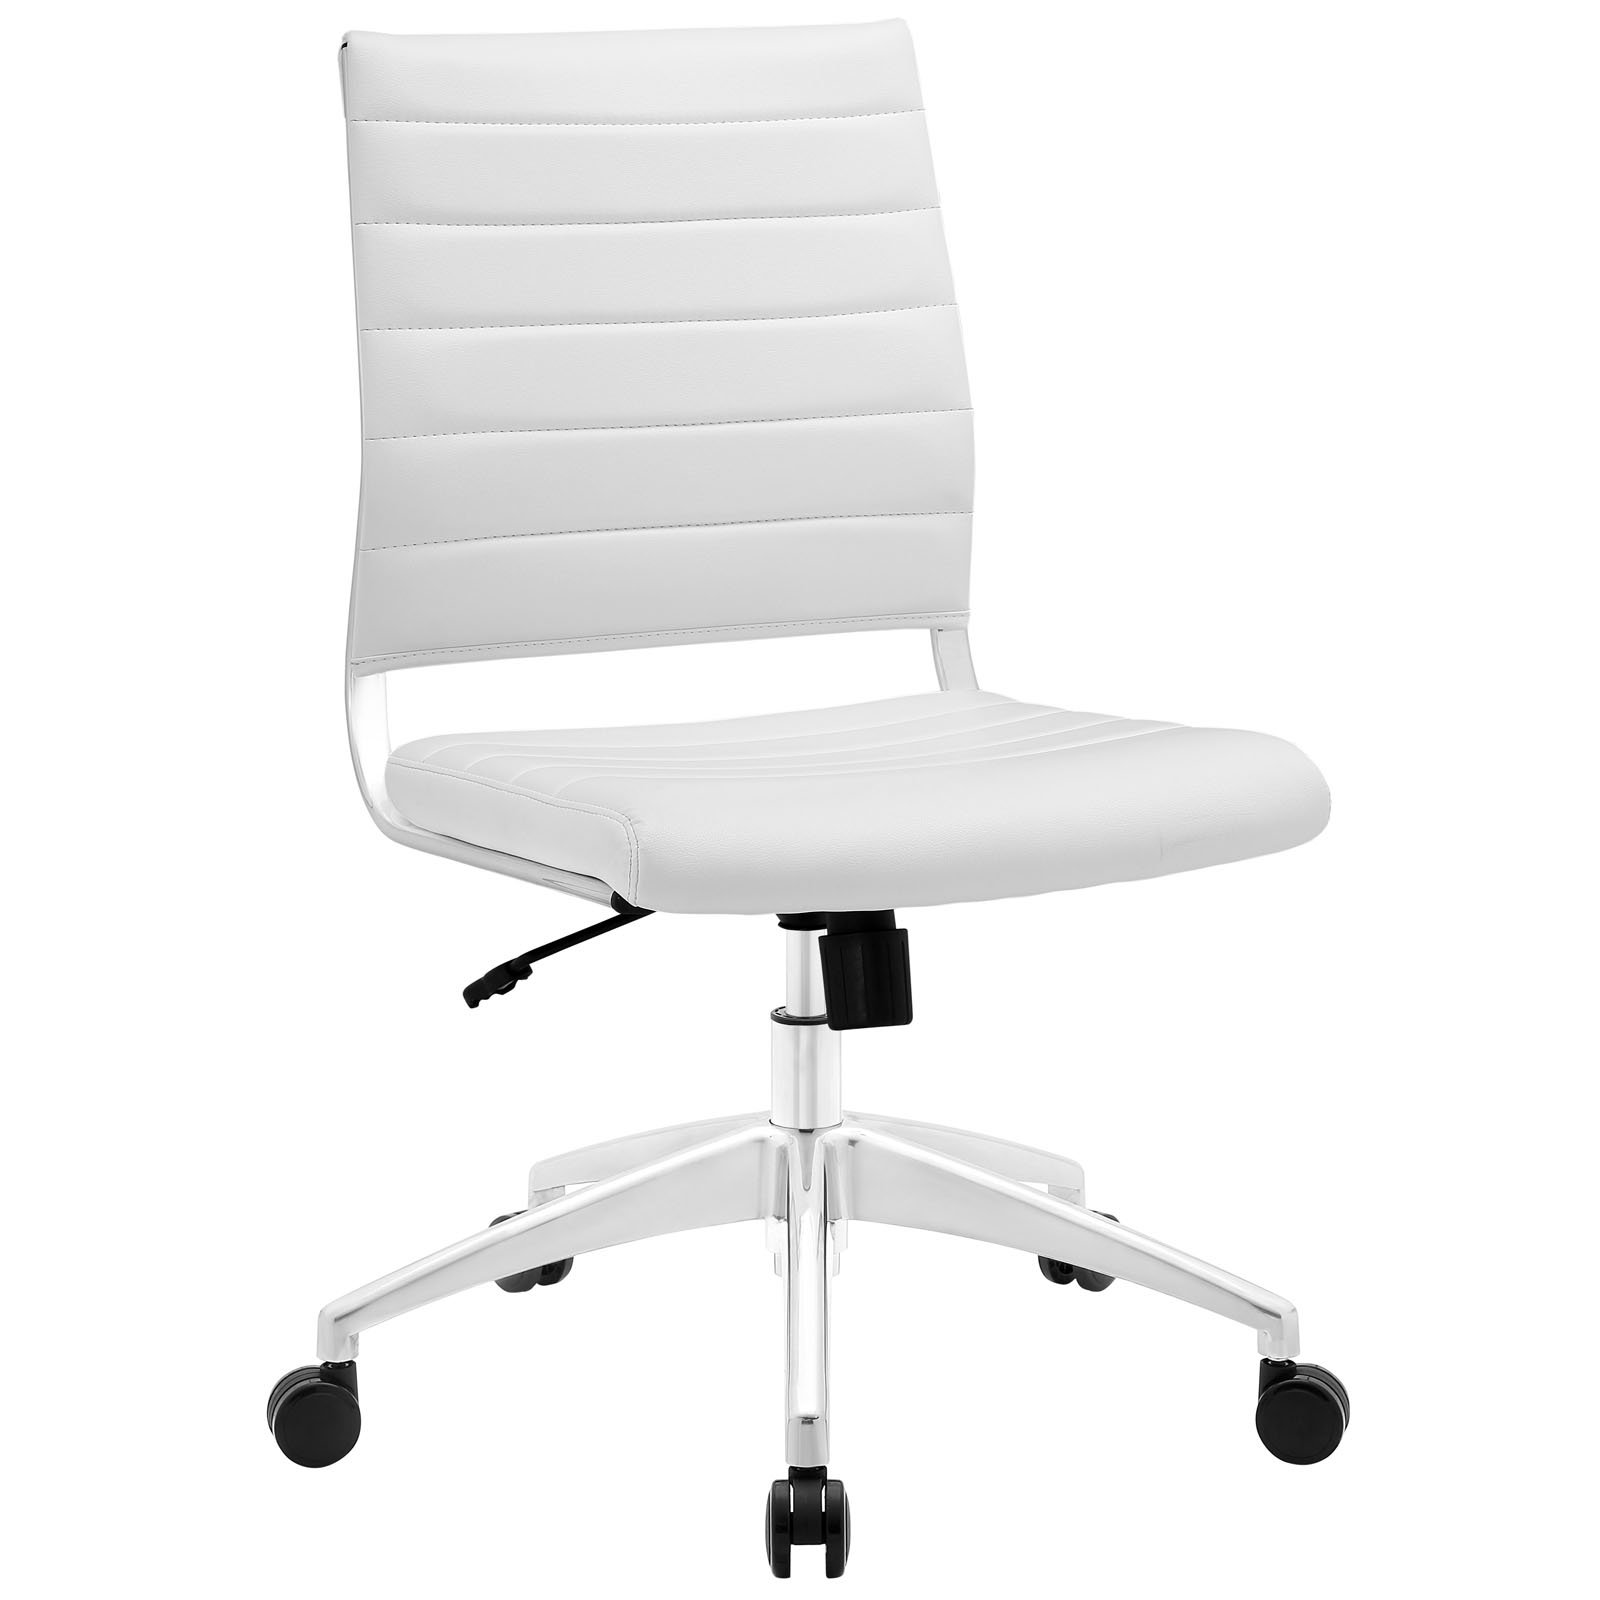 Modway Jive Ribbed Armless Mid Back Swivel Conference Chair In White by Modway